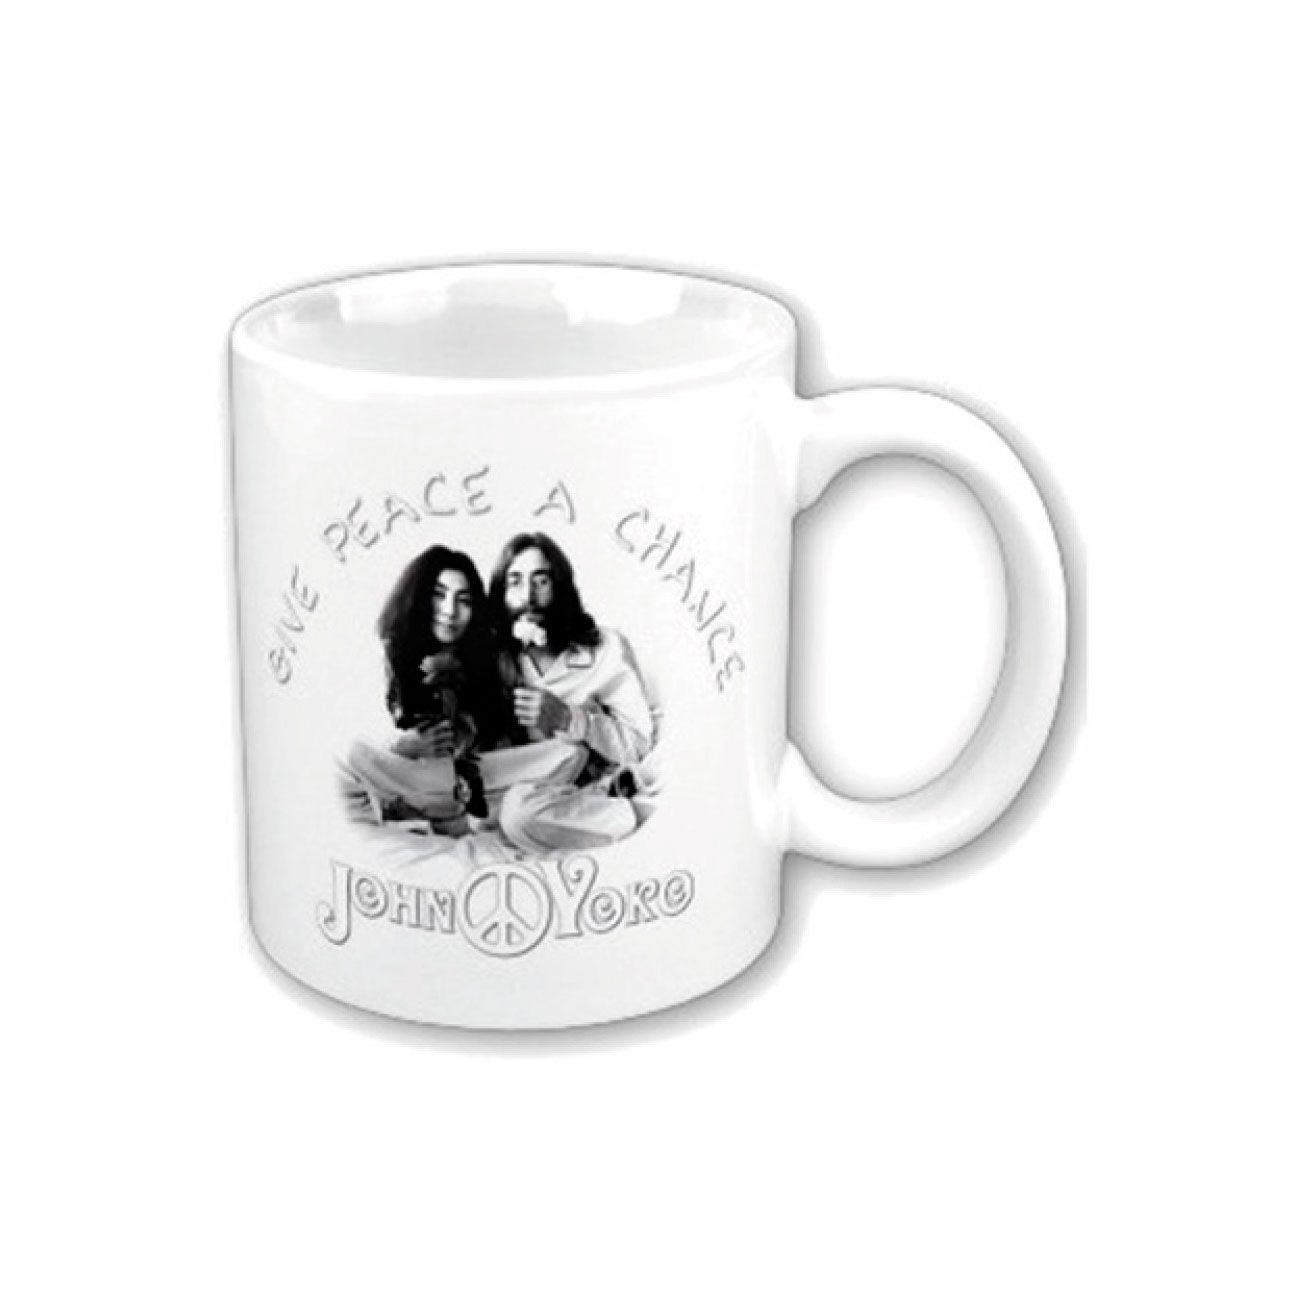 John Lennon Mug Give Peace A Chance. Emi Music officially licensed product.